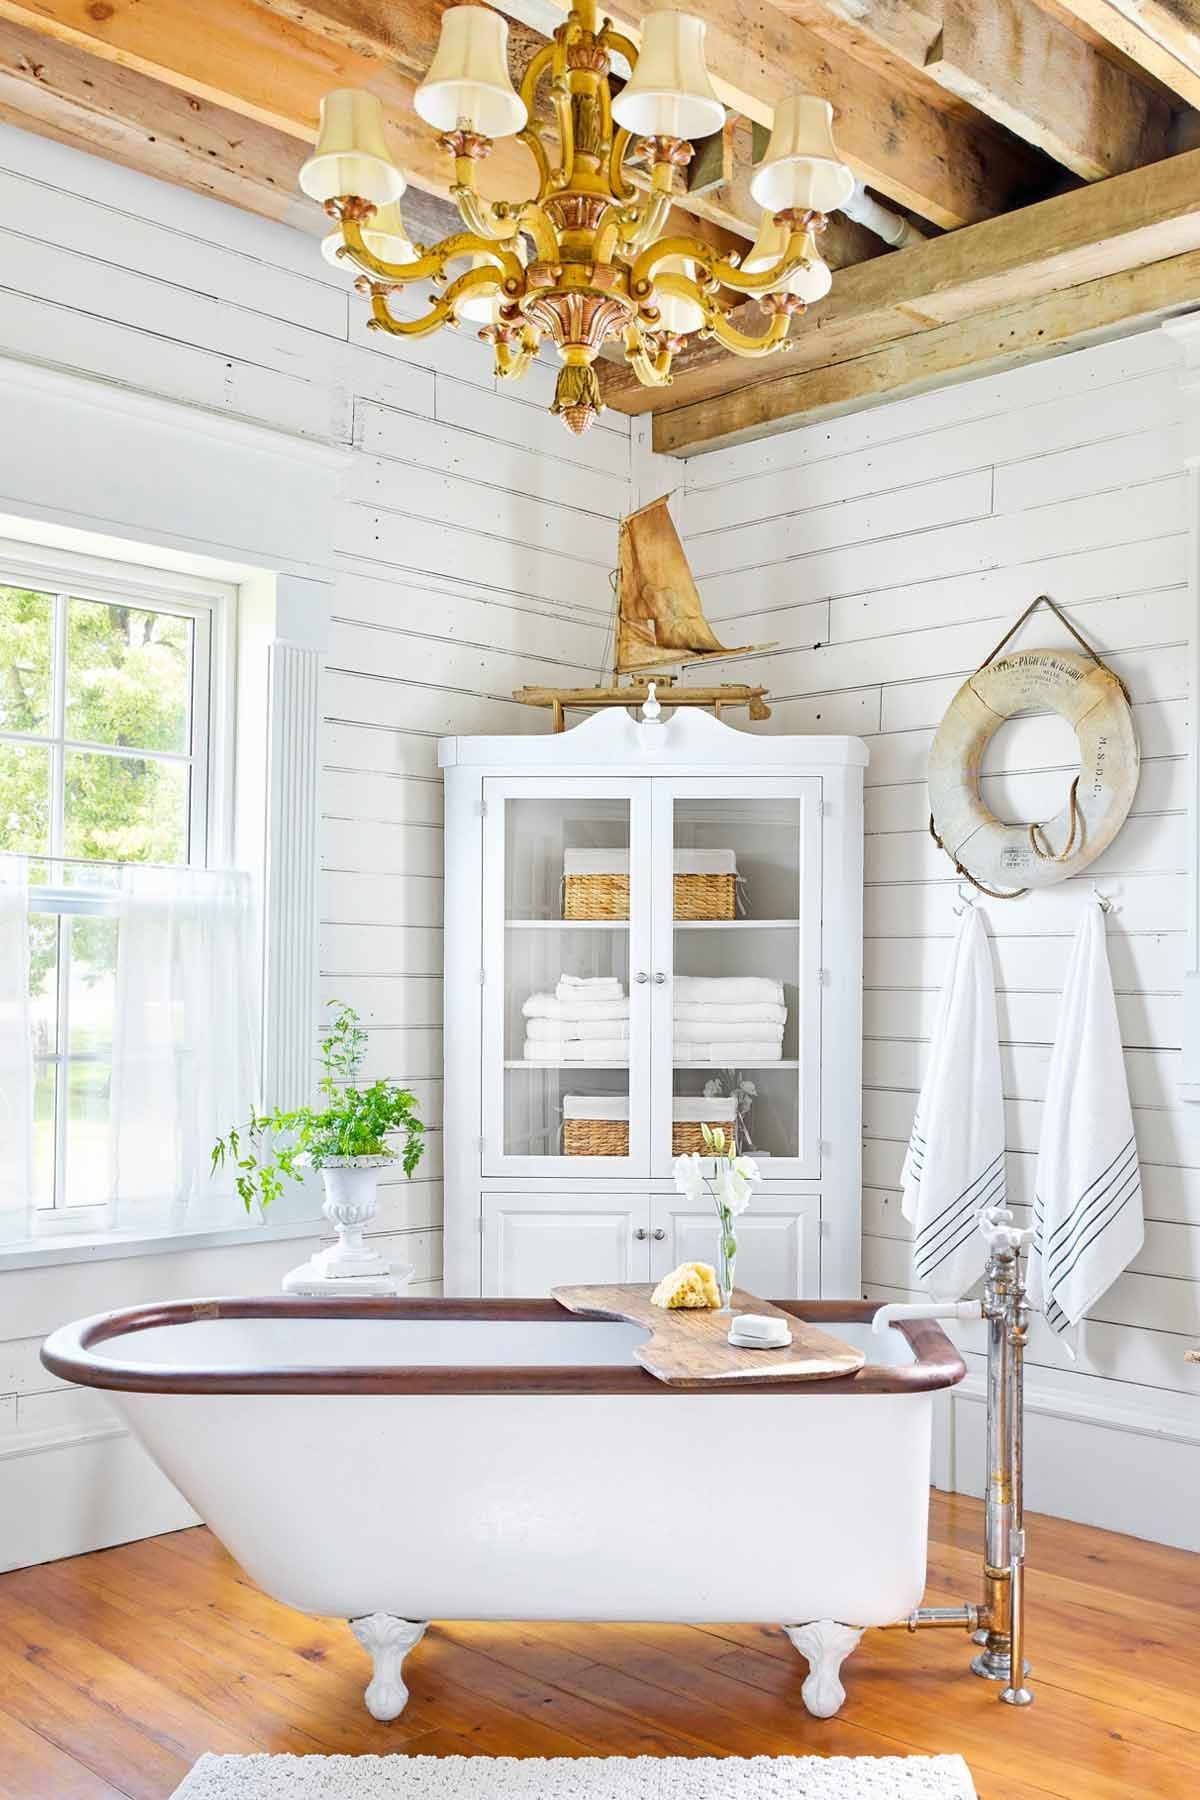 master makeover bathrooms urban style cottage decorating bathroom beautiful modern remodel farmhouse